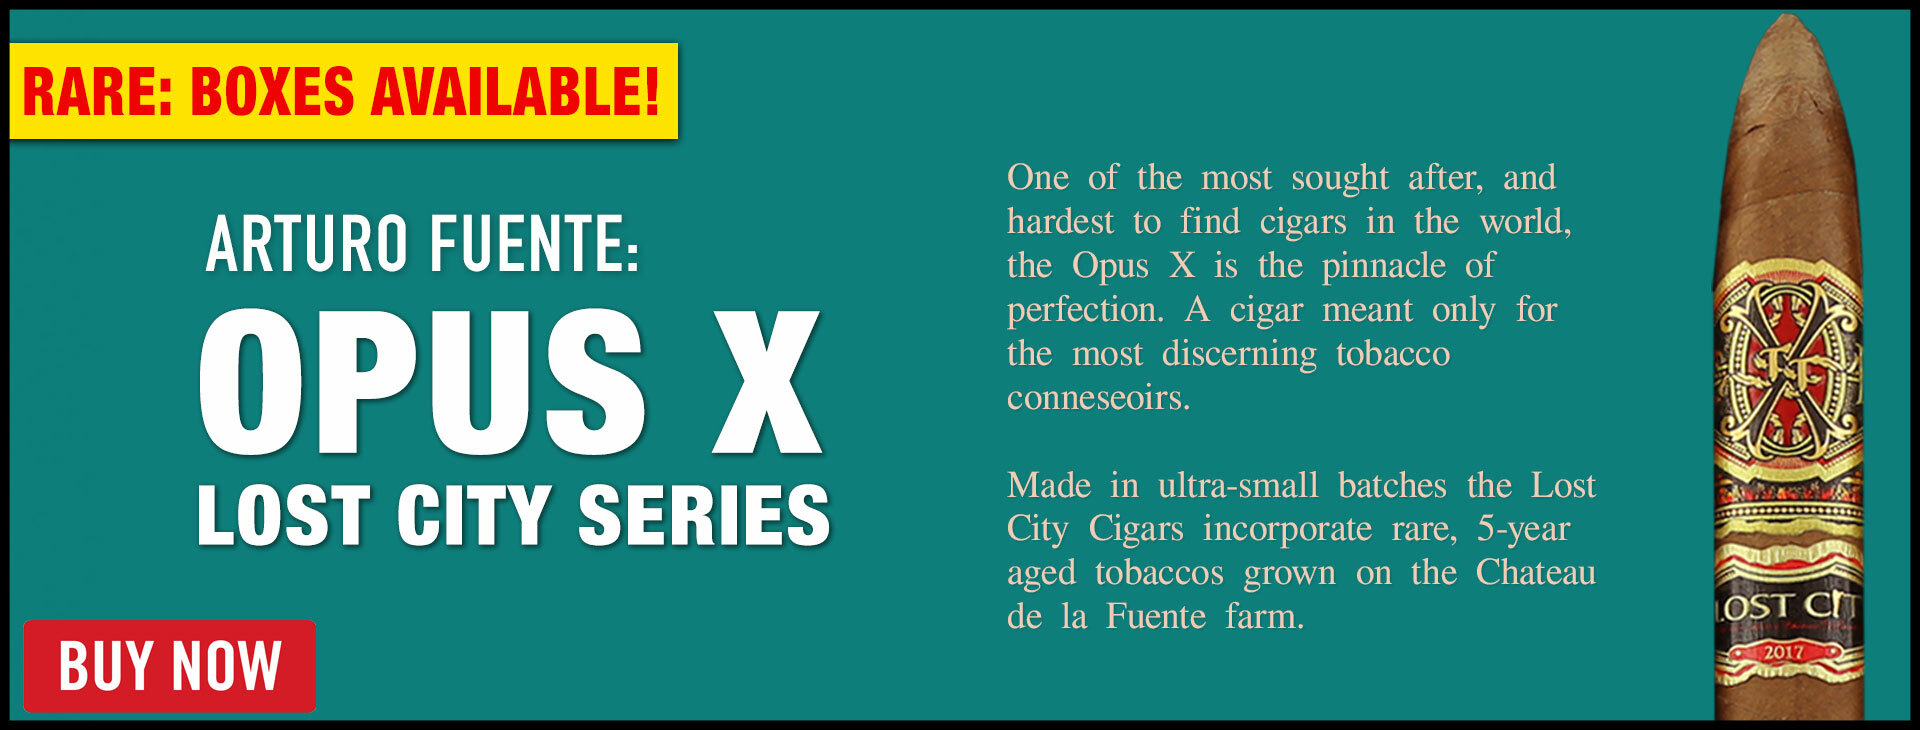 RED ALERT: OPUS X BOXES AVAILABLE!